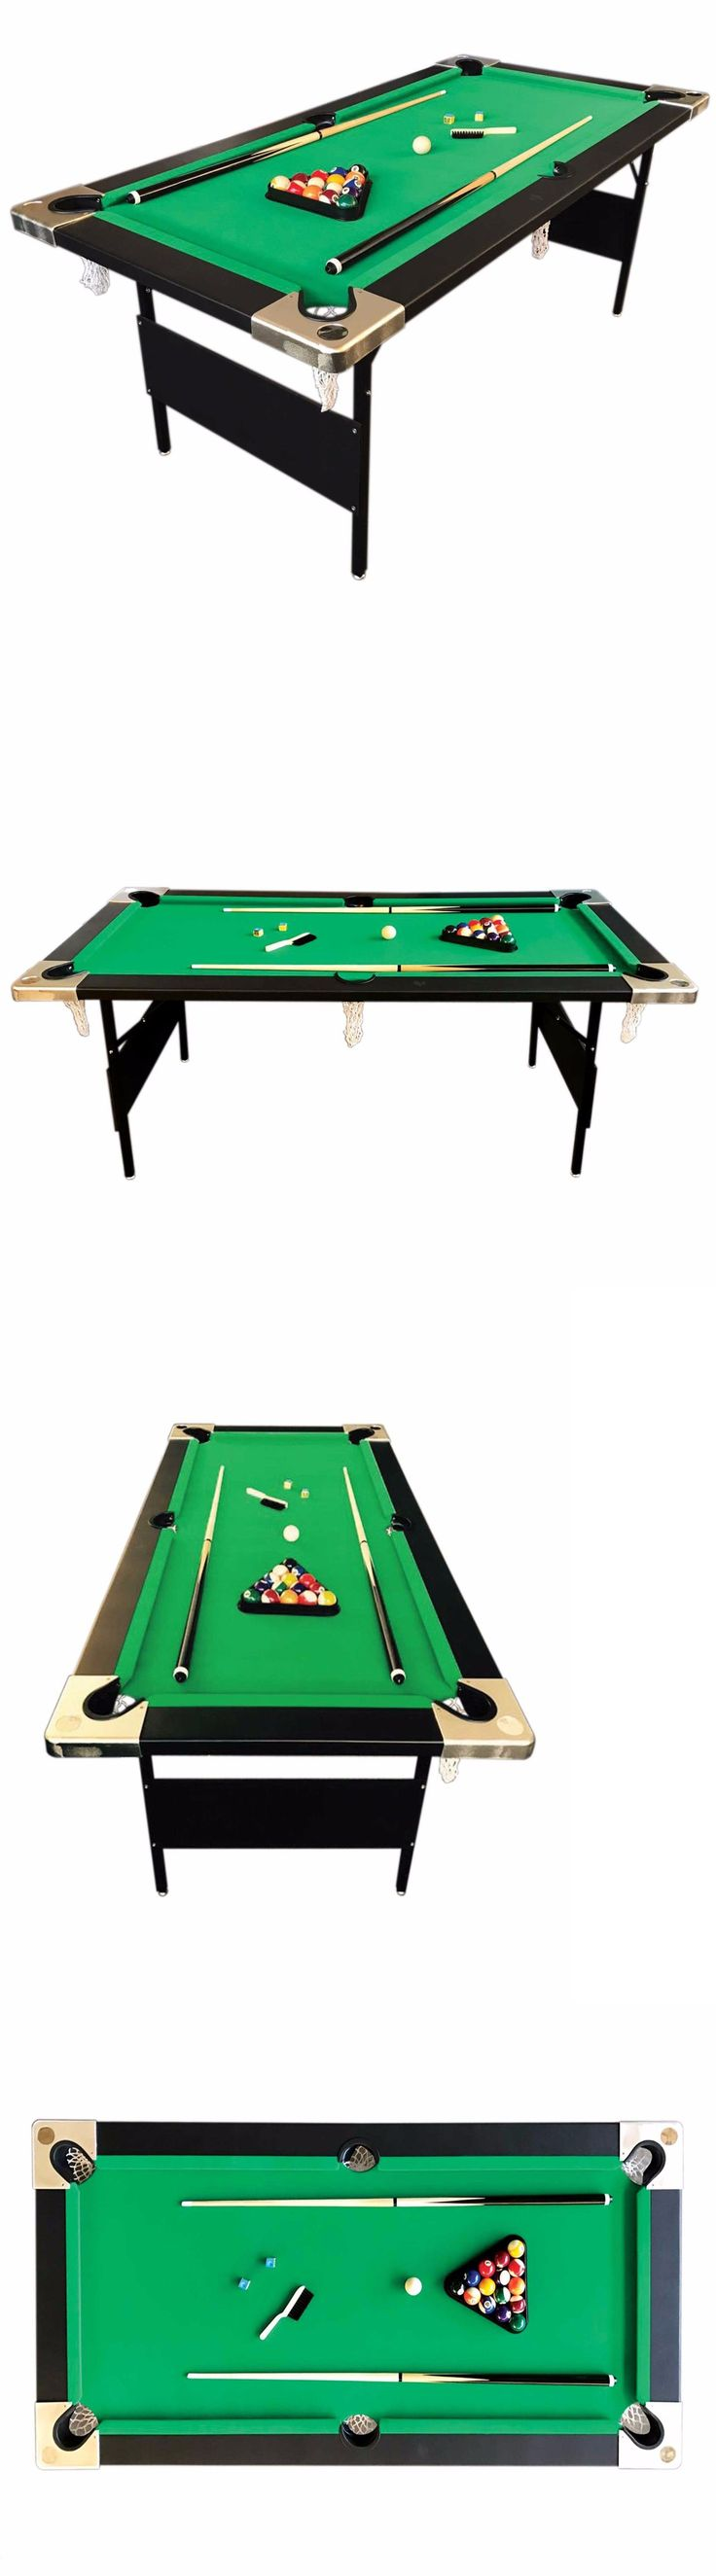 Tables 21213: 6 Feet Billiard Pool Table Portable Snooker Accessories Included Game Colorado -> BUY IT NOW ONLY: $474.05 on eBay!